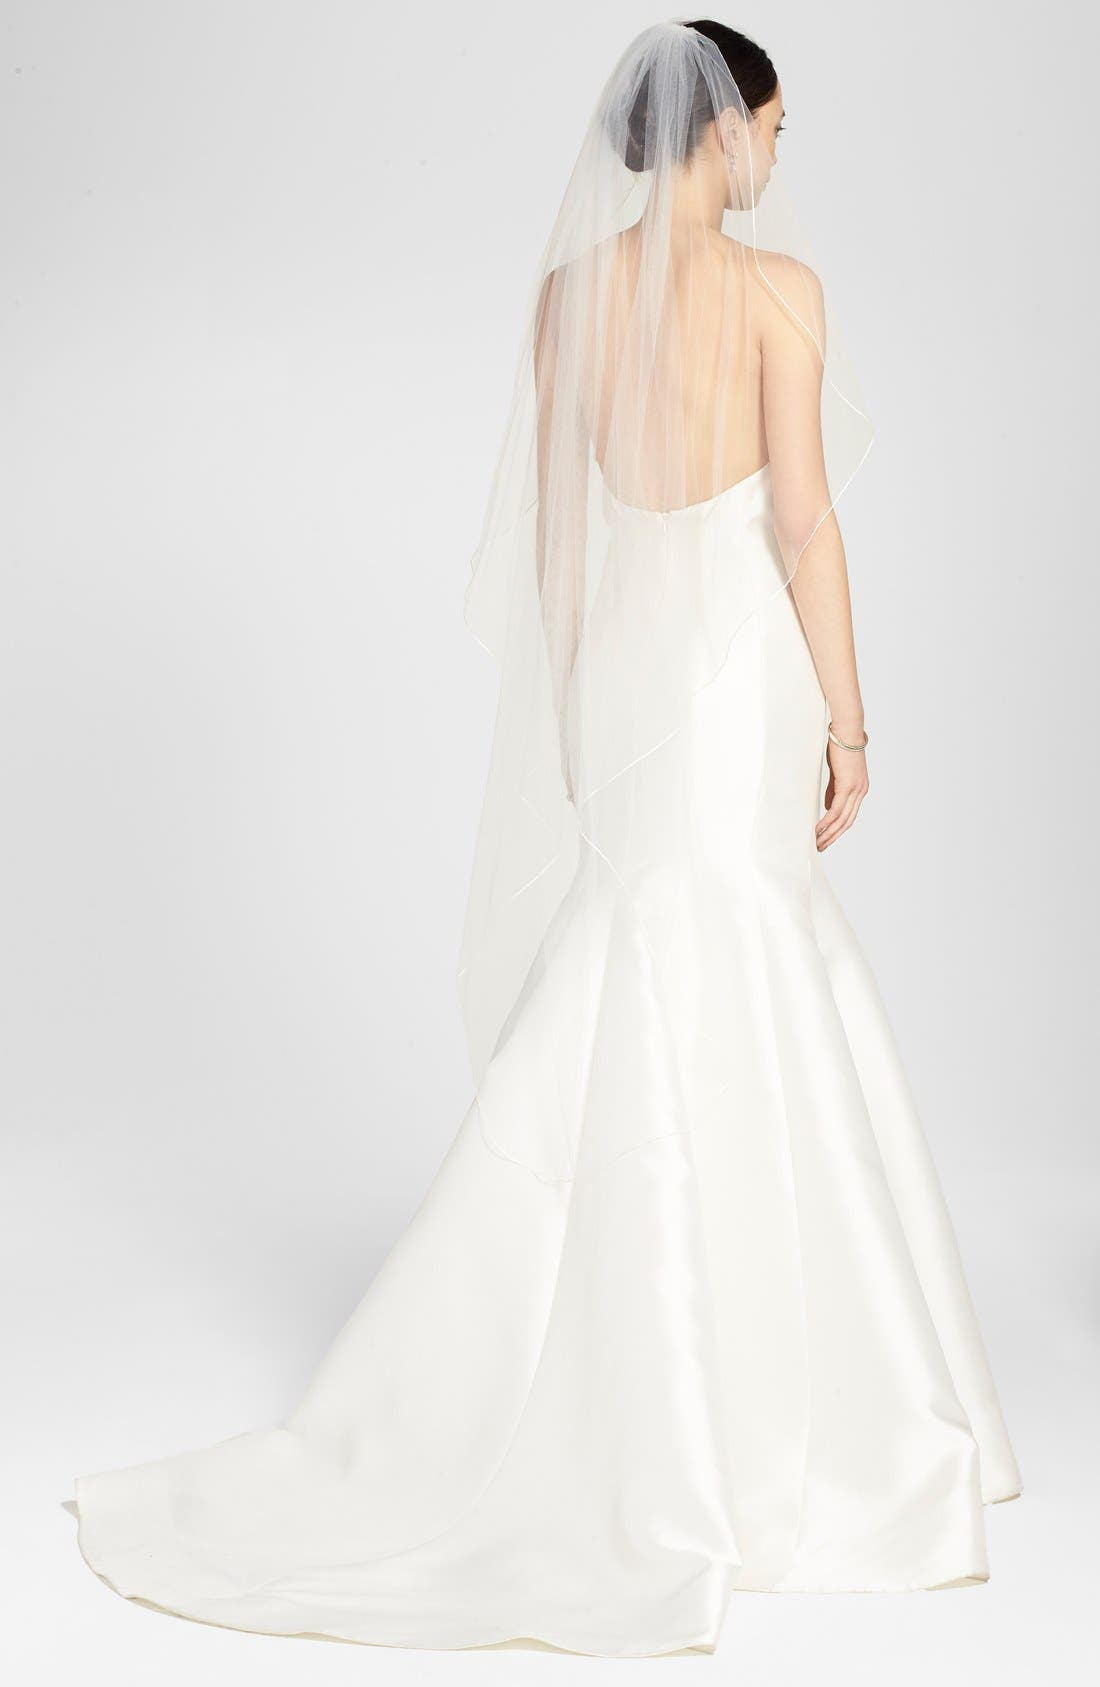 'Avalon' Cascading Waltz Length Veil,                             Alternate thumbnail 3, color,                             Light Ivory